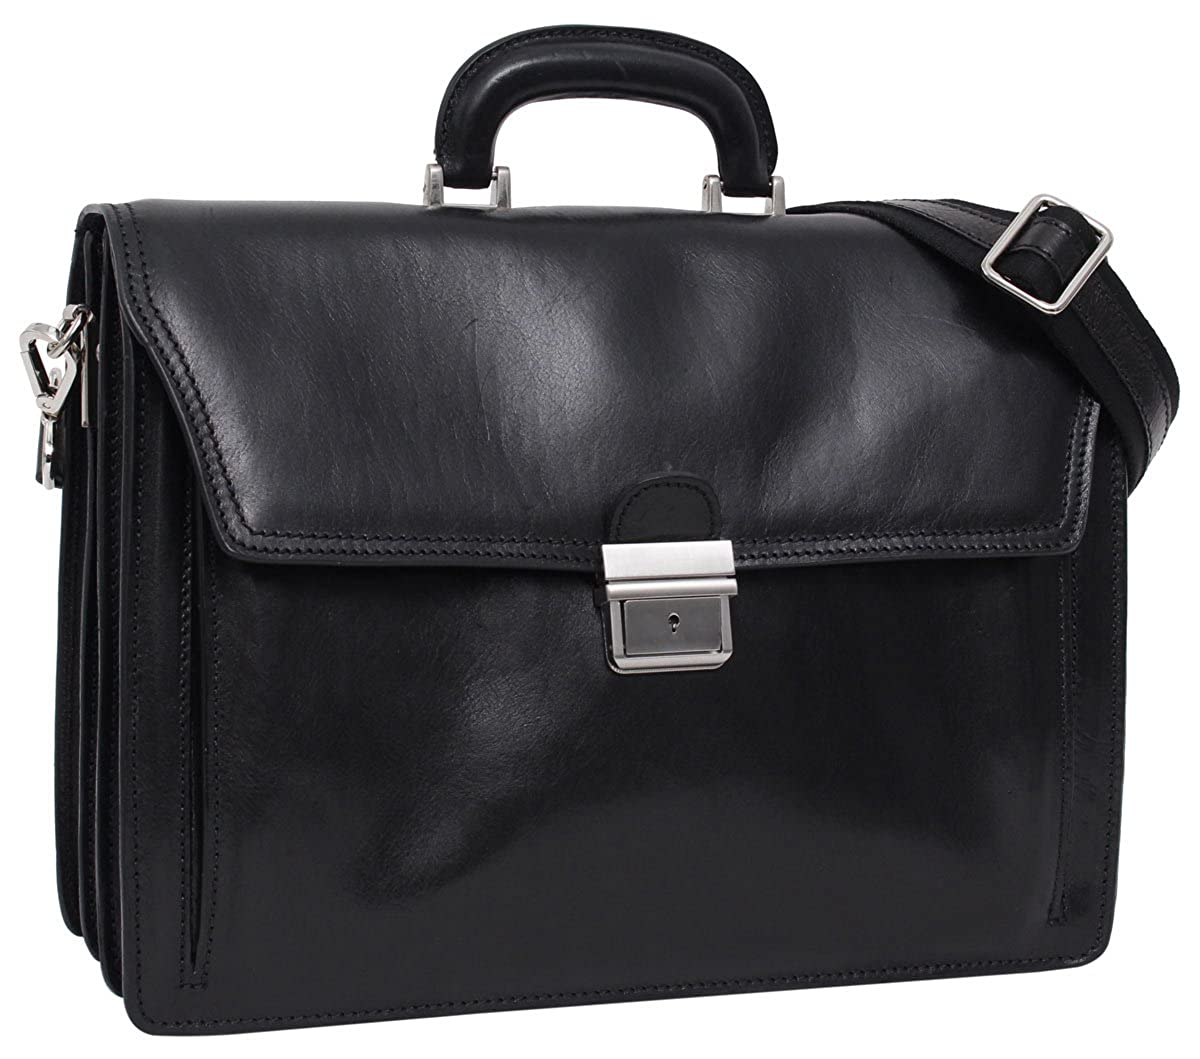 "Gusti Cuir studio ""Clemens"" sac business made in Italy sac bureau attache-case en cuir véritable sac notebook ordinateur portable 15, 4"" sac professeur hommes femmes noir 2B30-93-2"